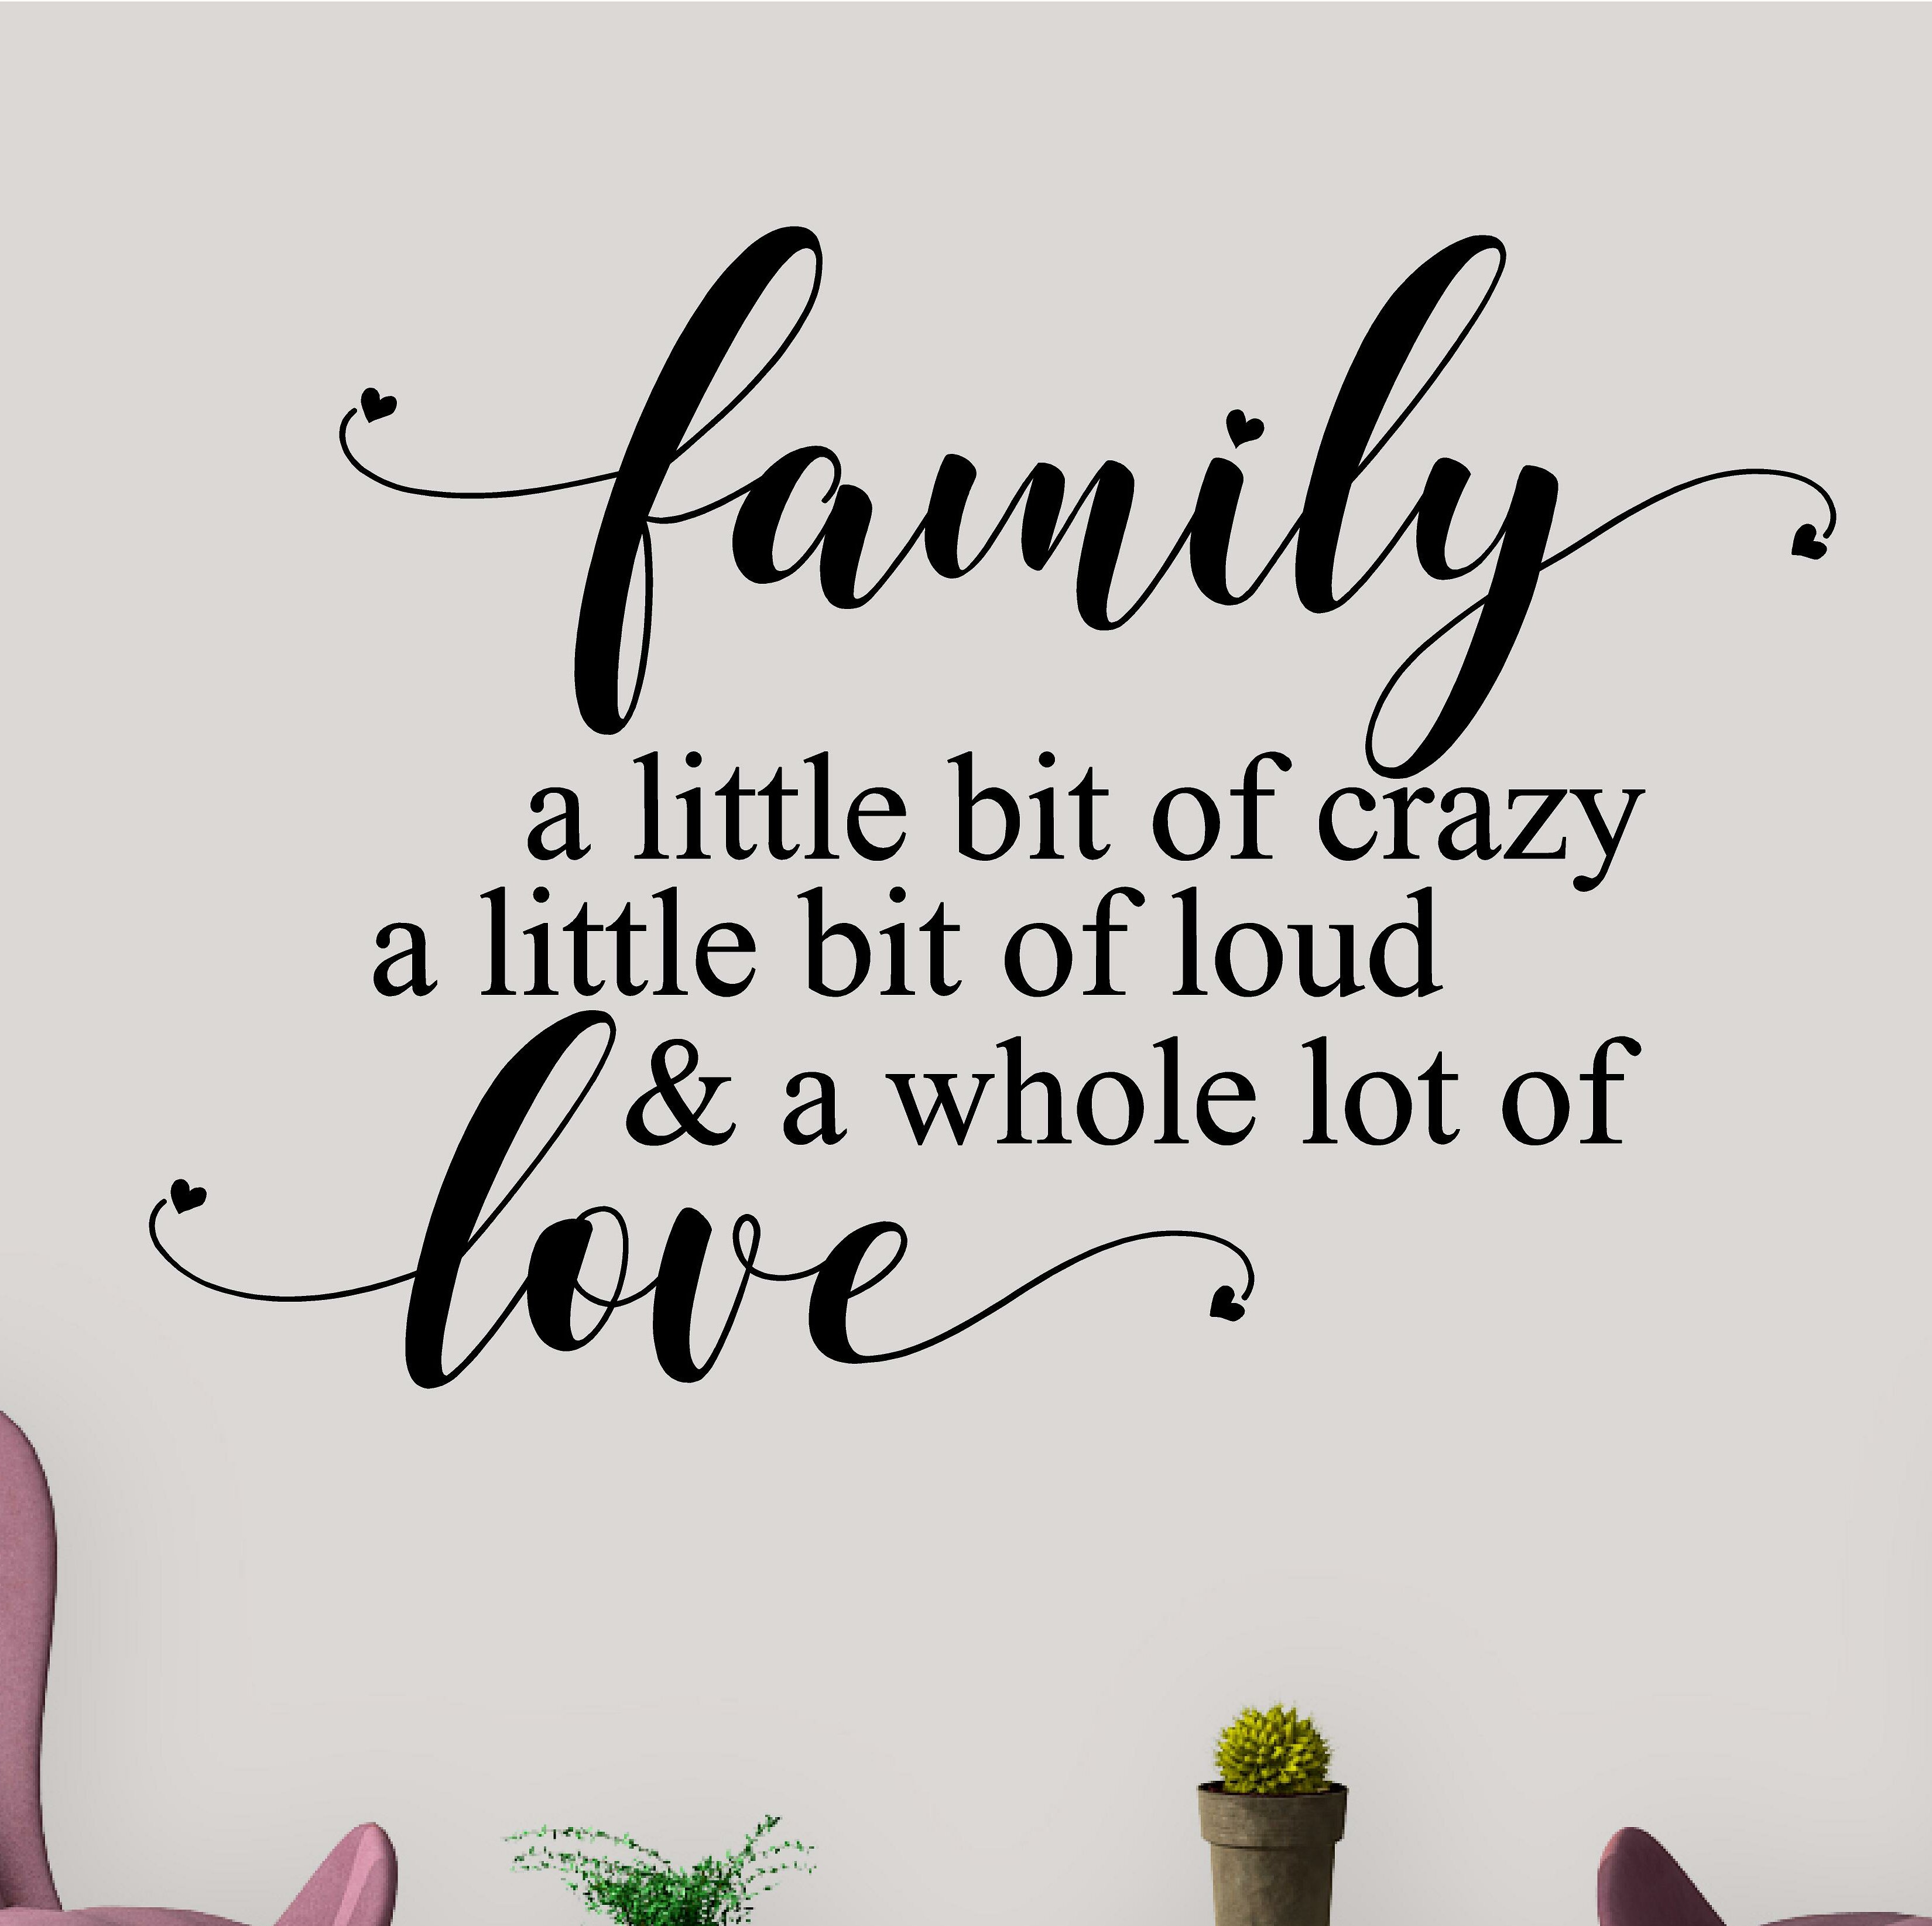 Winston porter family a little bit of crazy loud love letters words wall decals wayfair